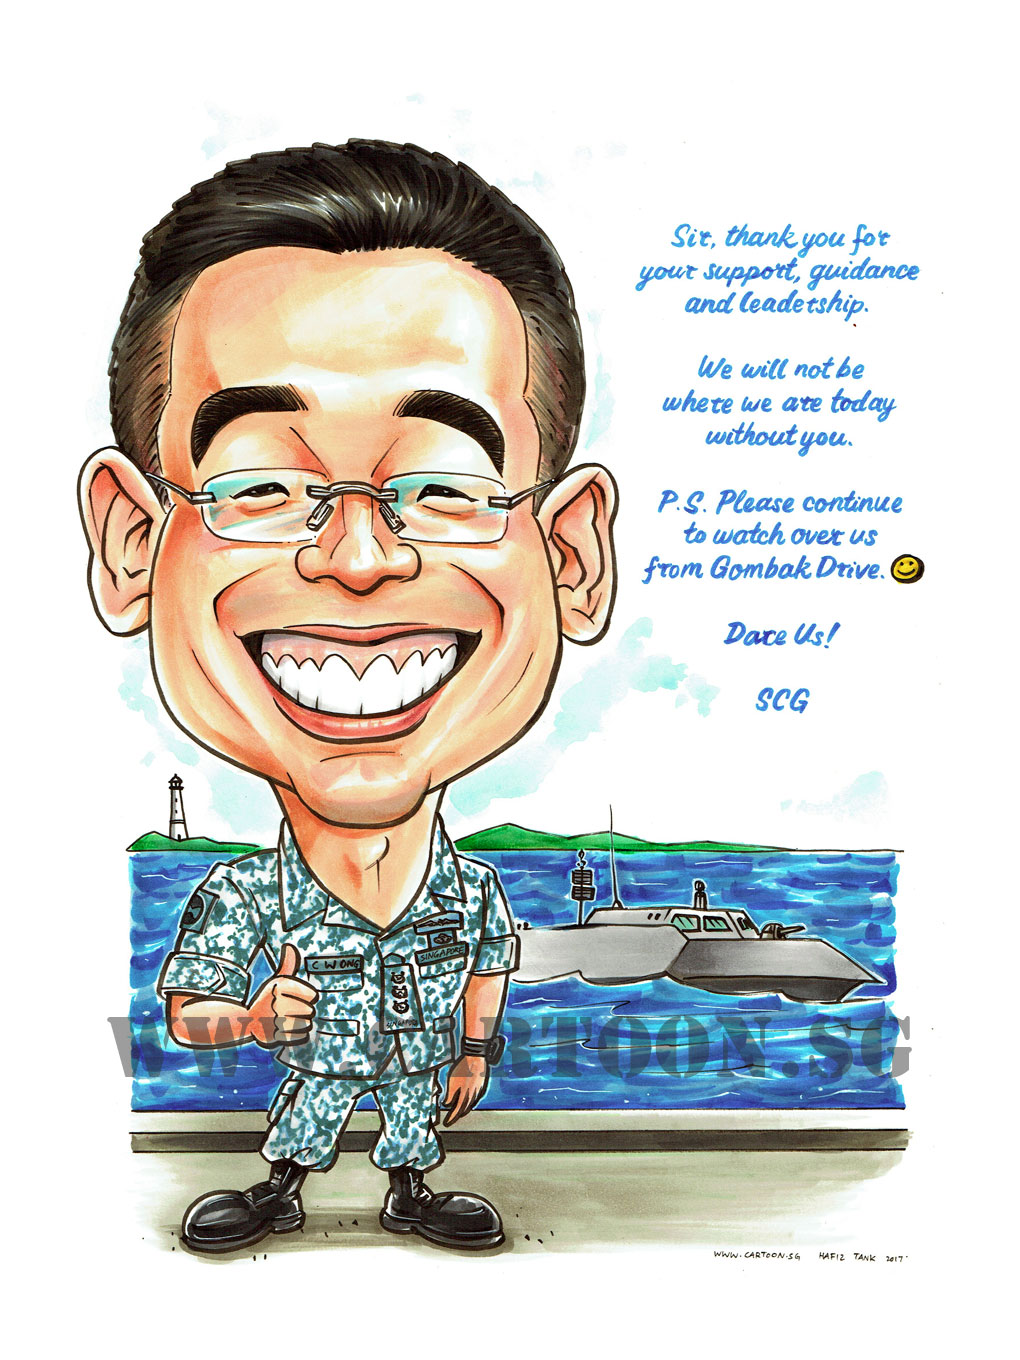 2017-06-14-Caricature-Singapore-navy-saf-army-ship-uniform-light-house.jpg